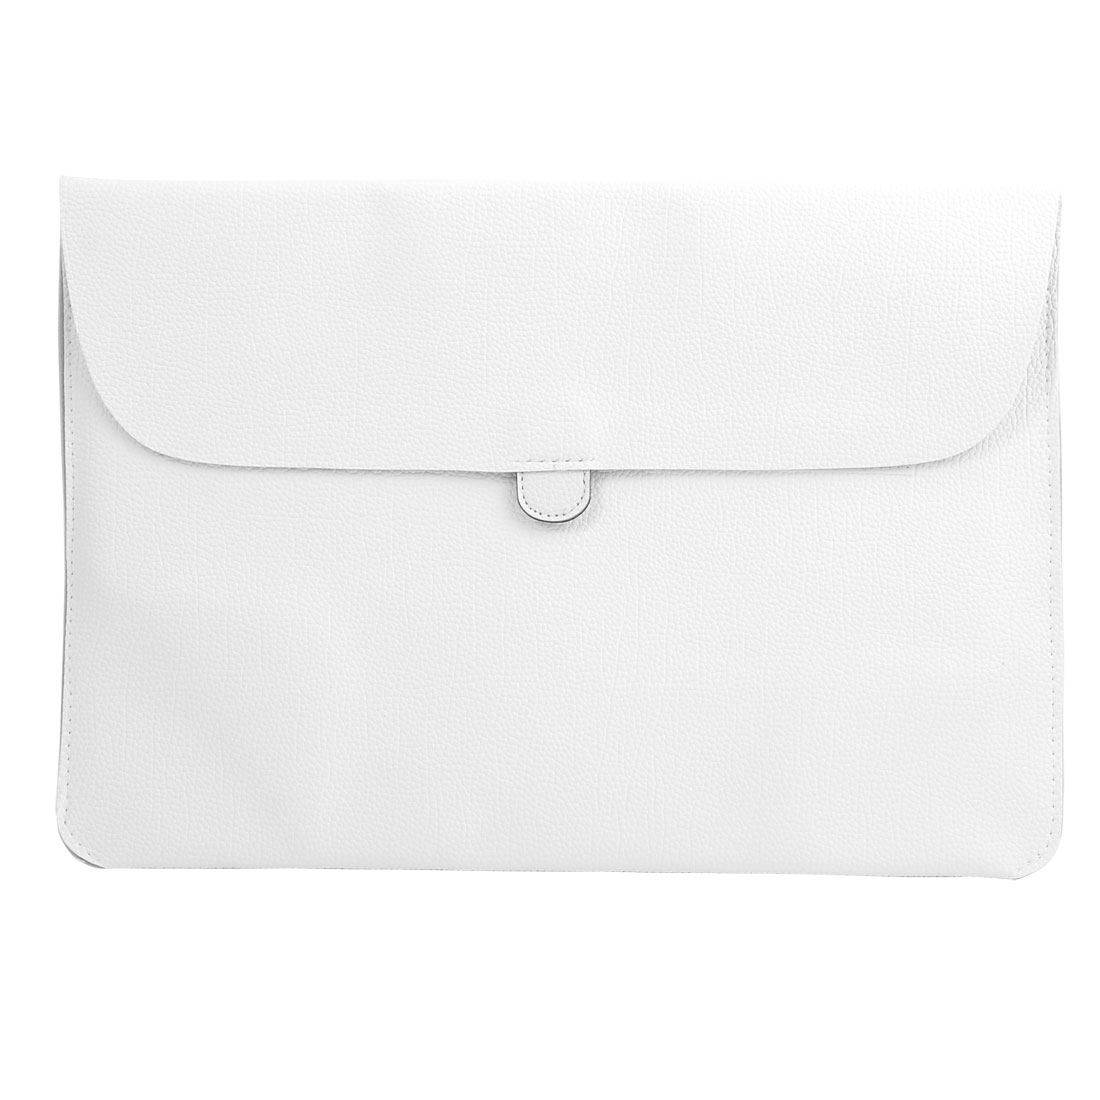 """Carrying Laptop Case Pouch Envelope Shape Tablet Sleeve Bag White for Macbook 13.3"""""""